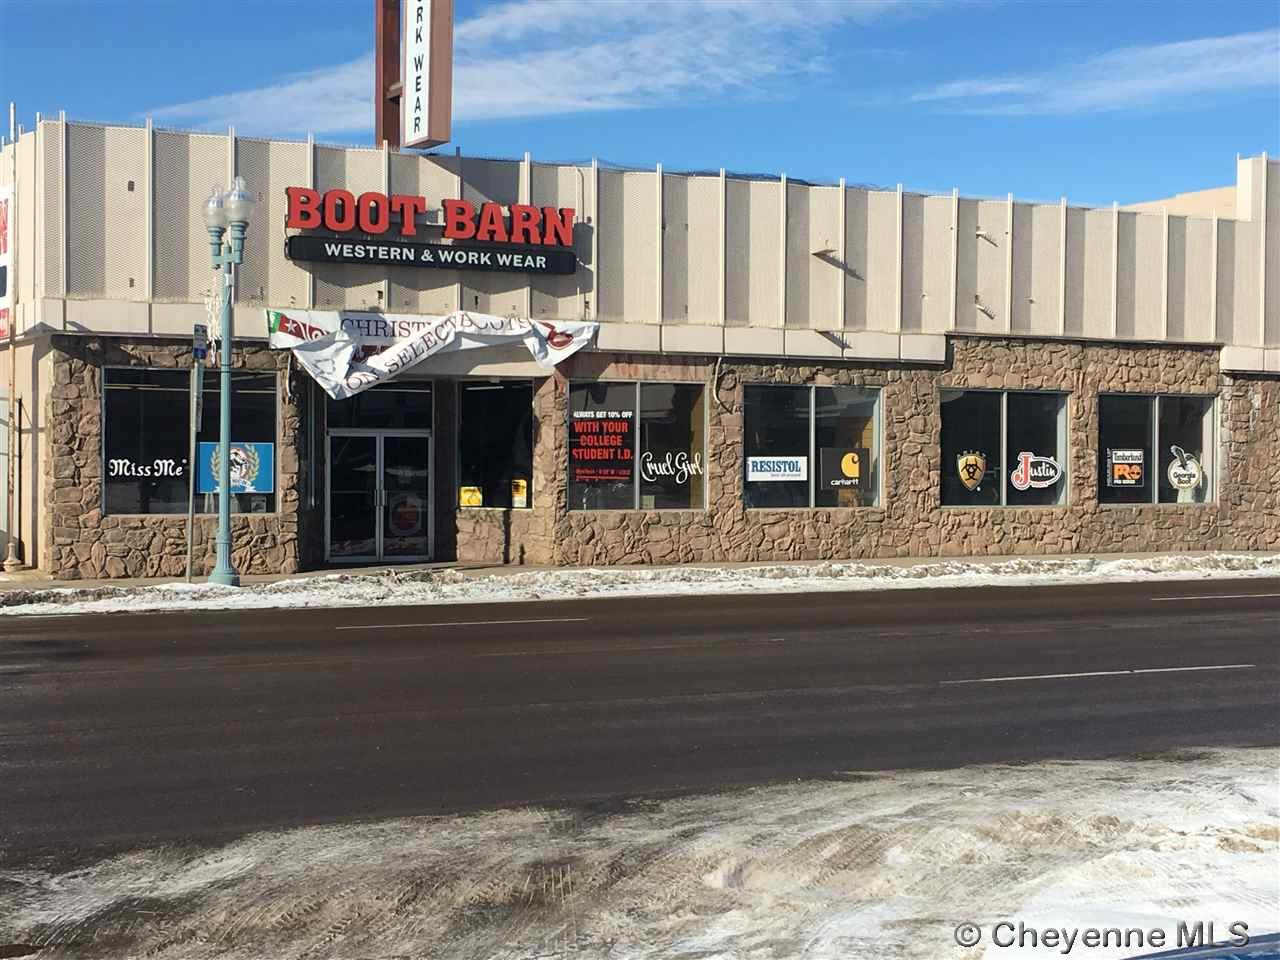 Commercial for Sale at 158 N 3rd St Laramie, Wyoming 82070 United States